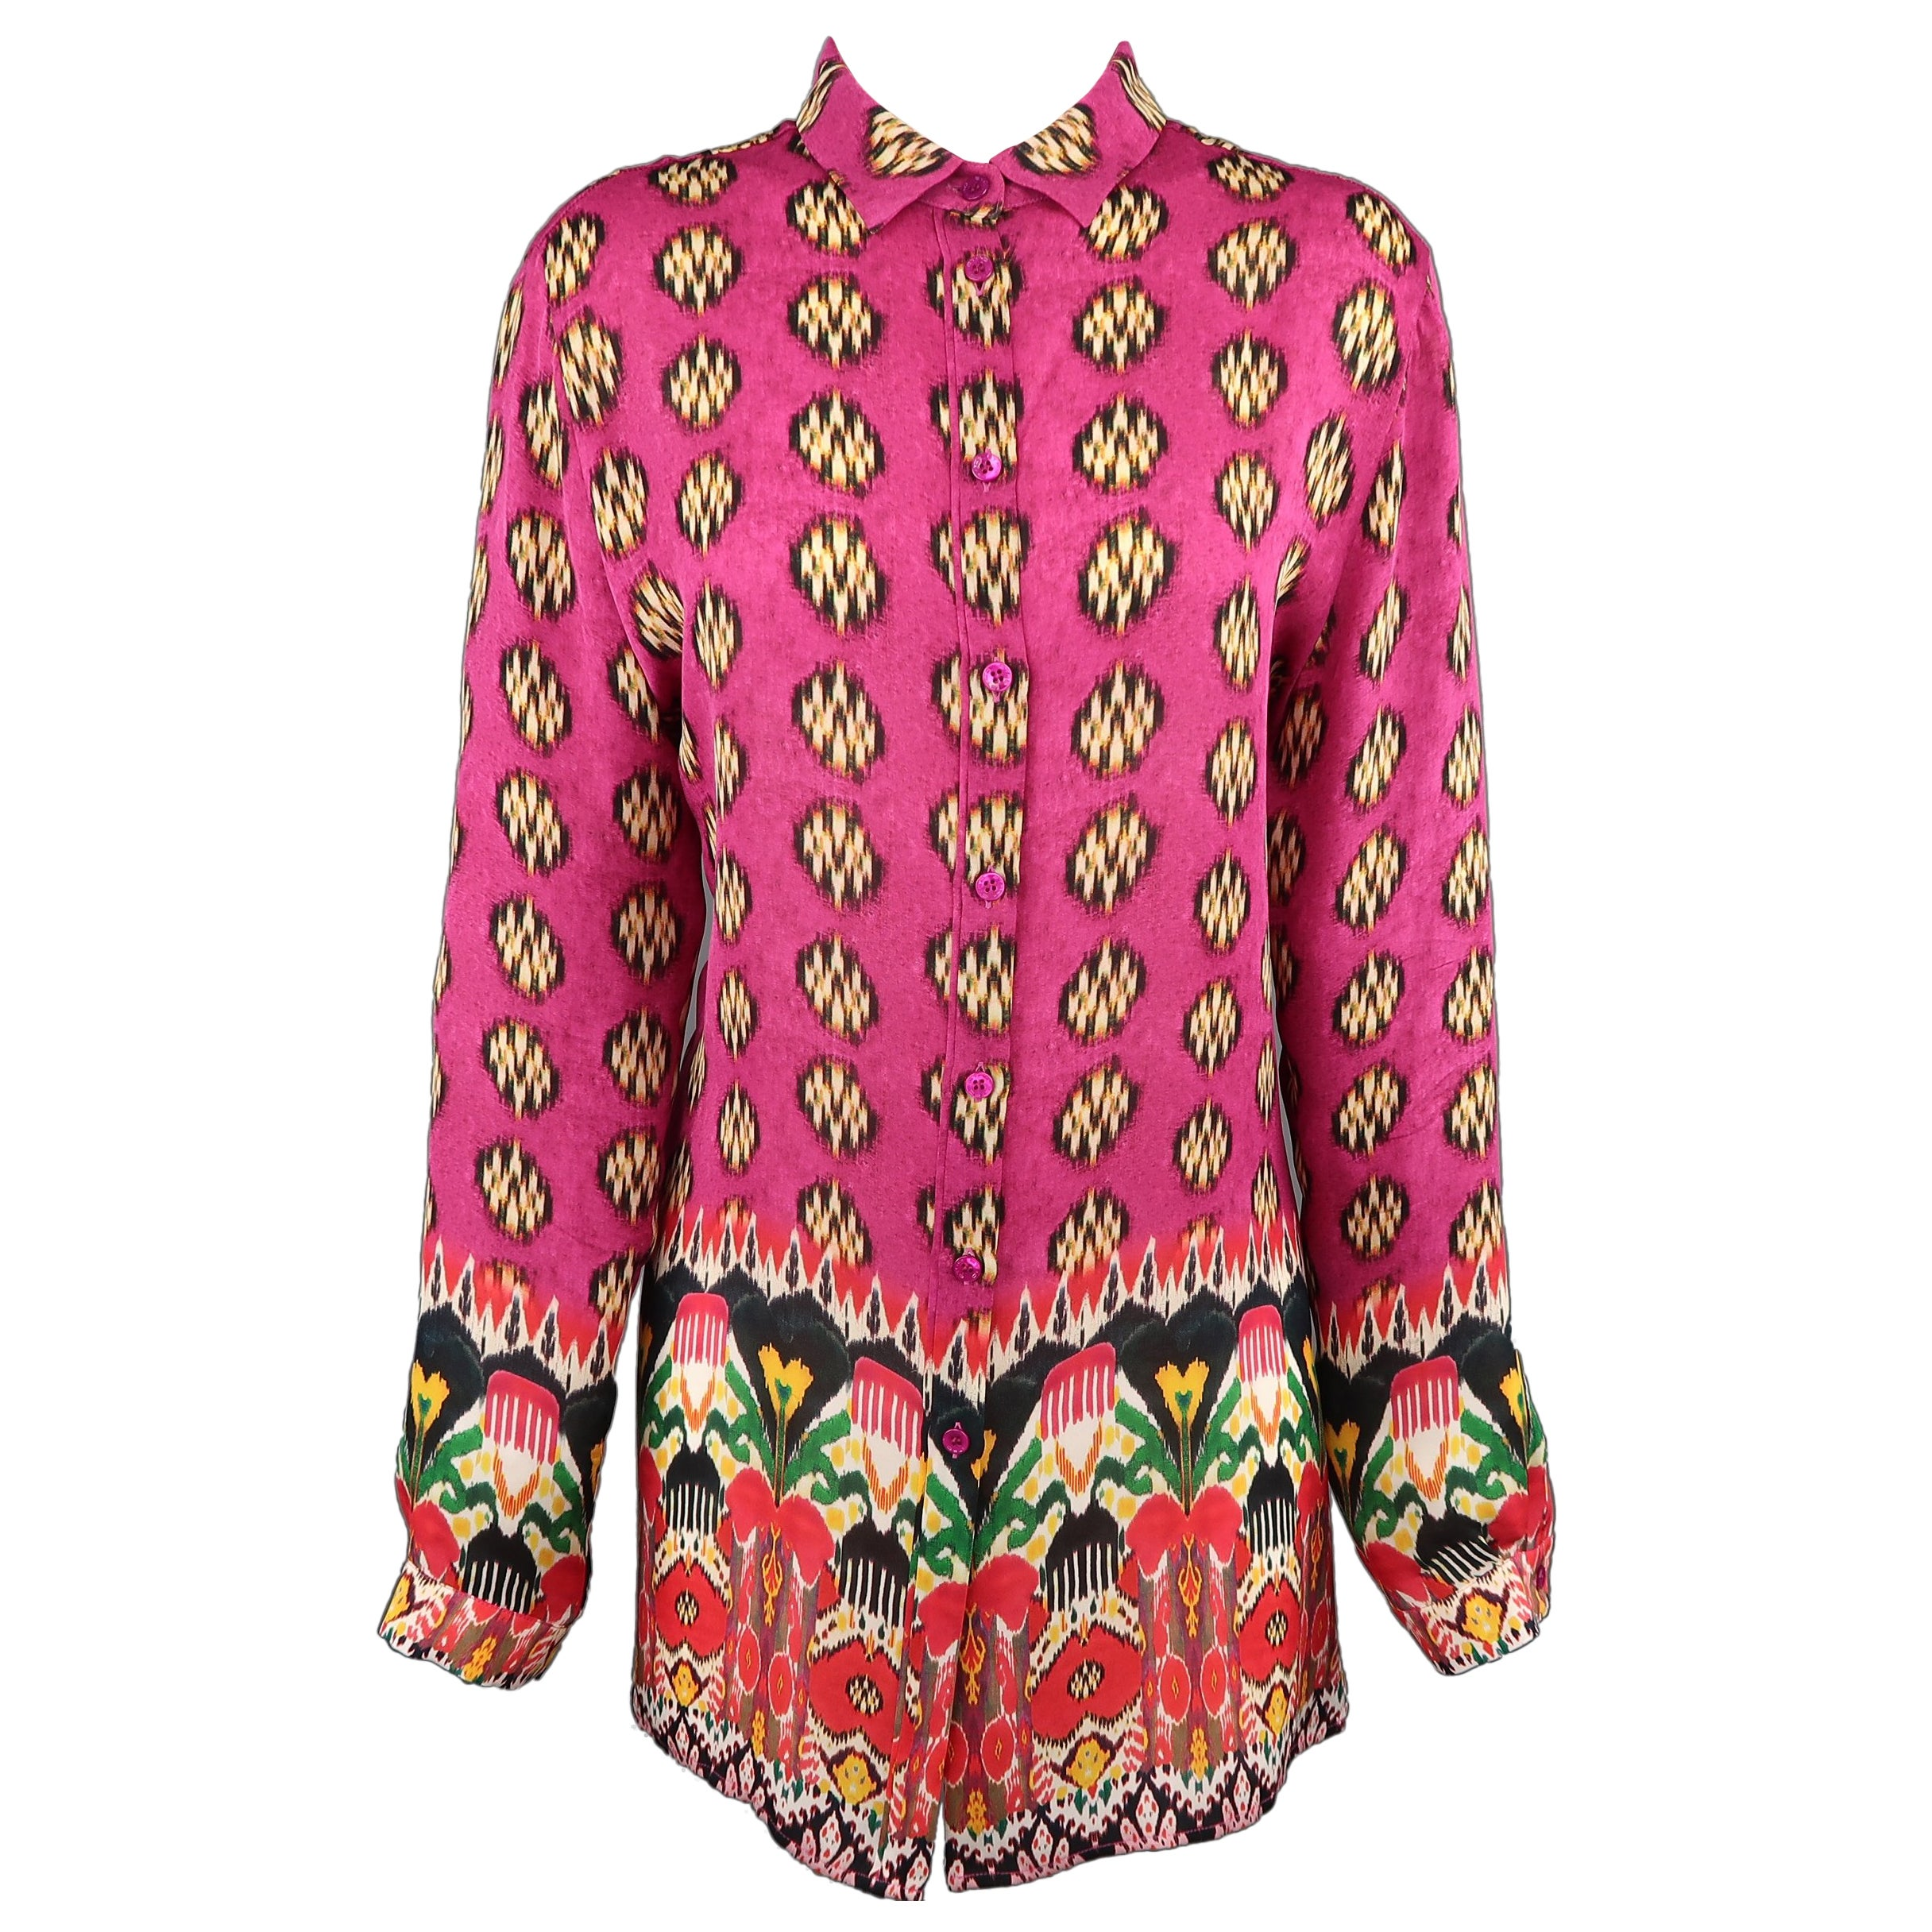 Etro Size 14 Pink Multi Color Mixed Prints Silk Long Blouse At 1stdibs